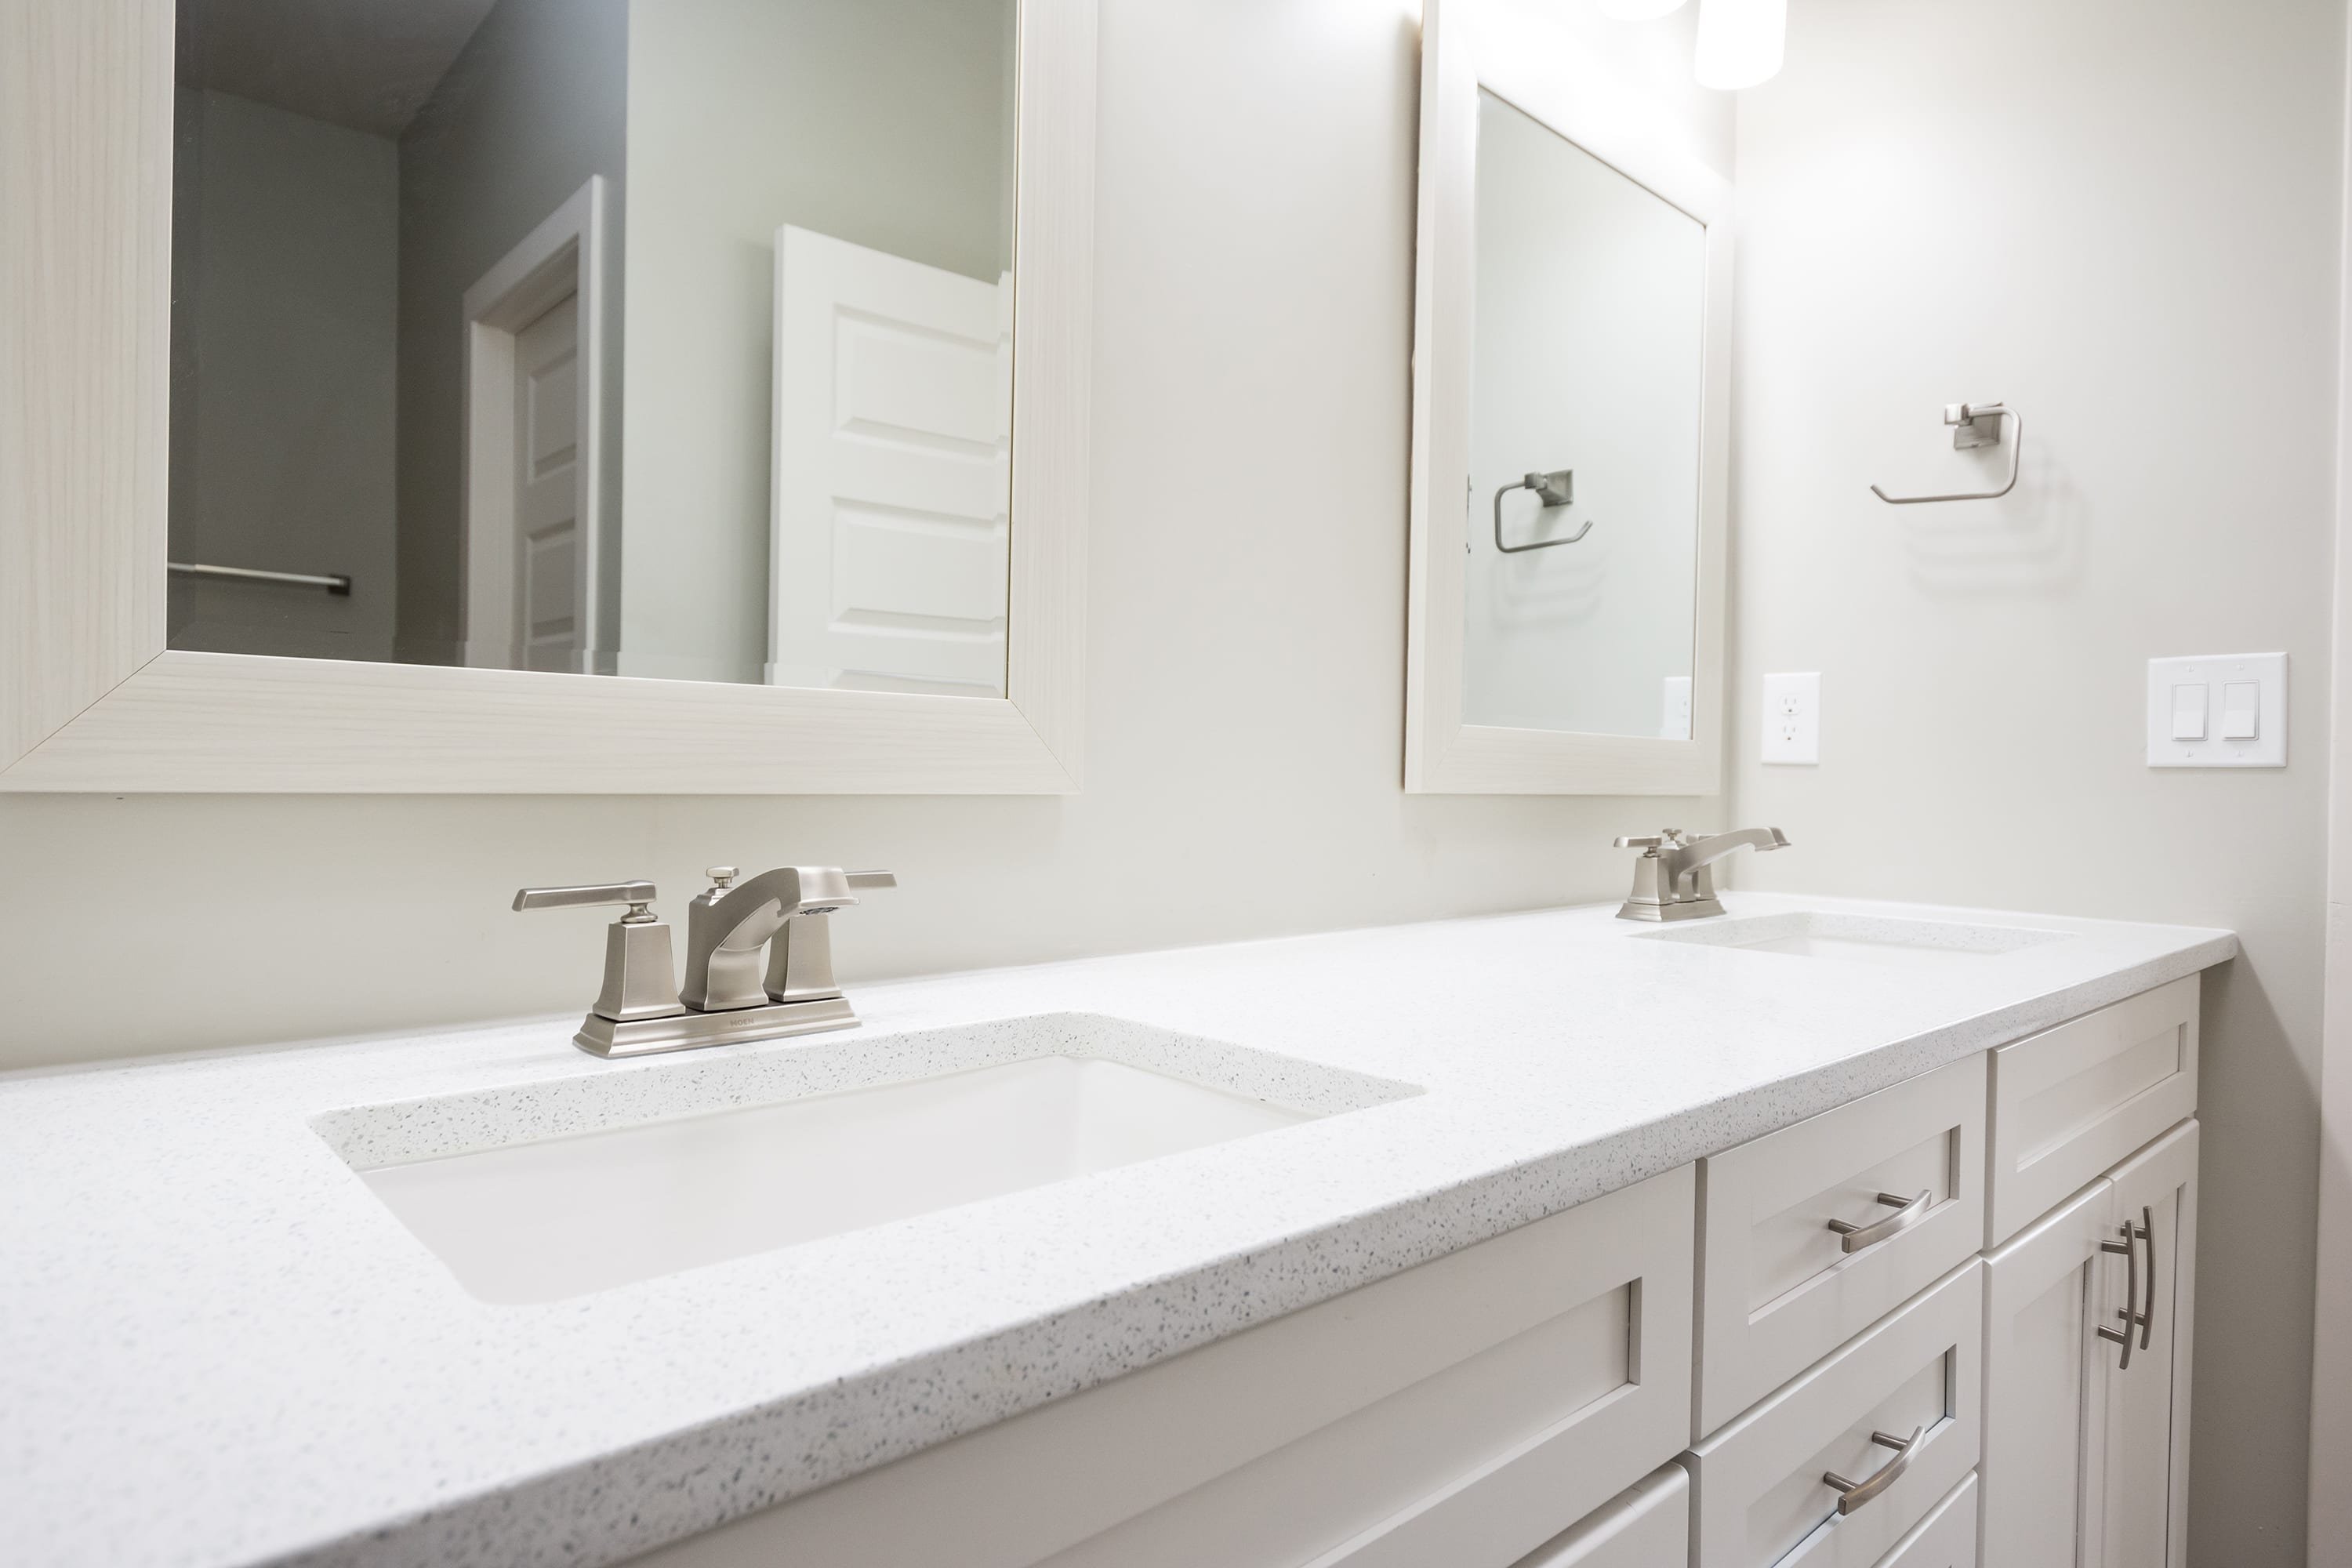 Interior shot of master bathroom sinks in 2884 Maddox contemporary home